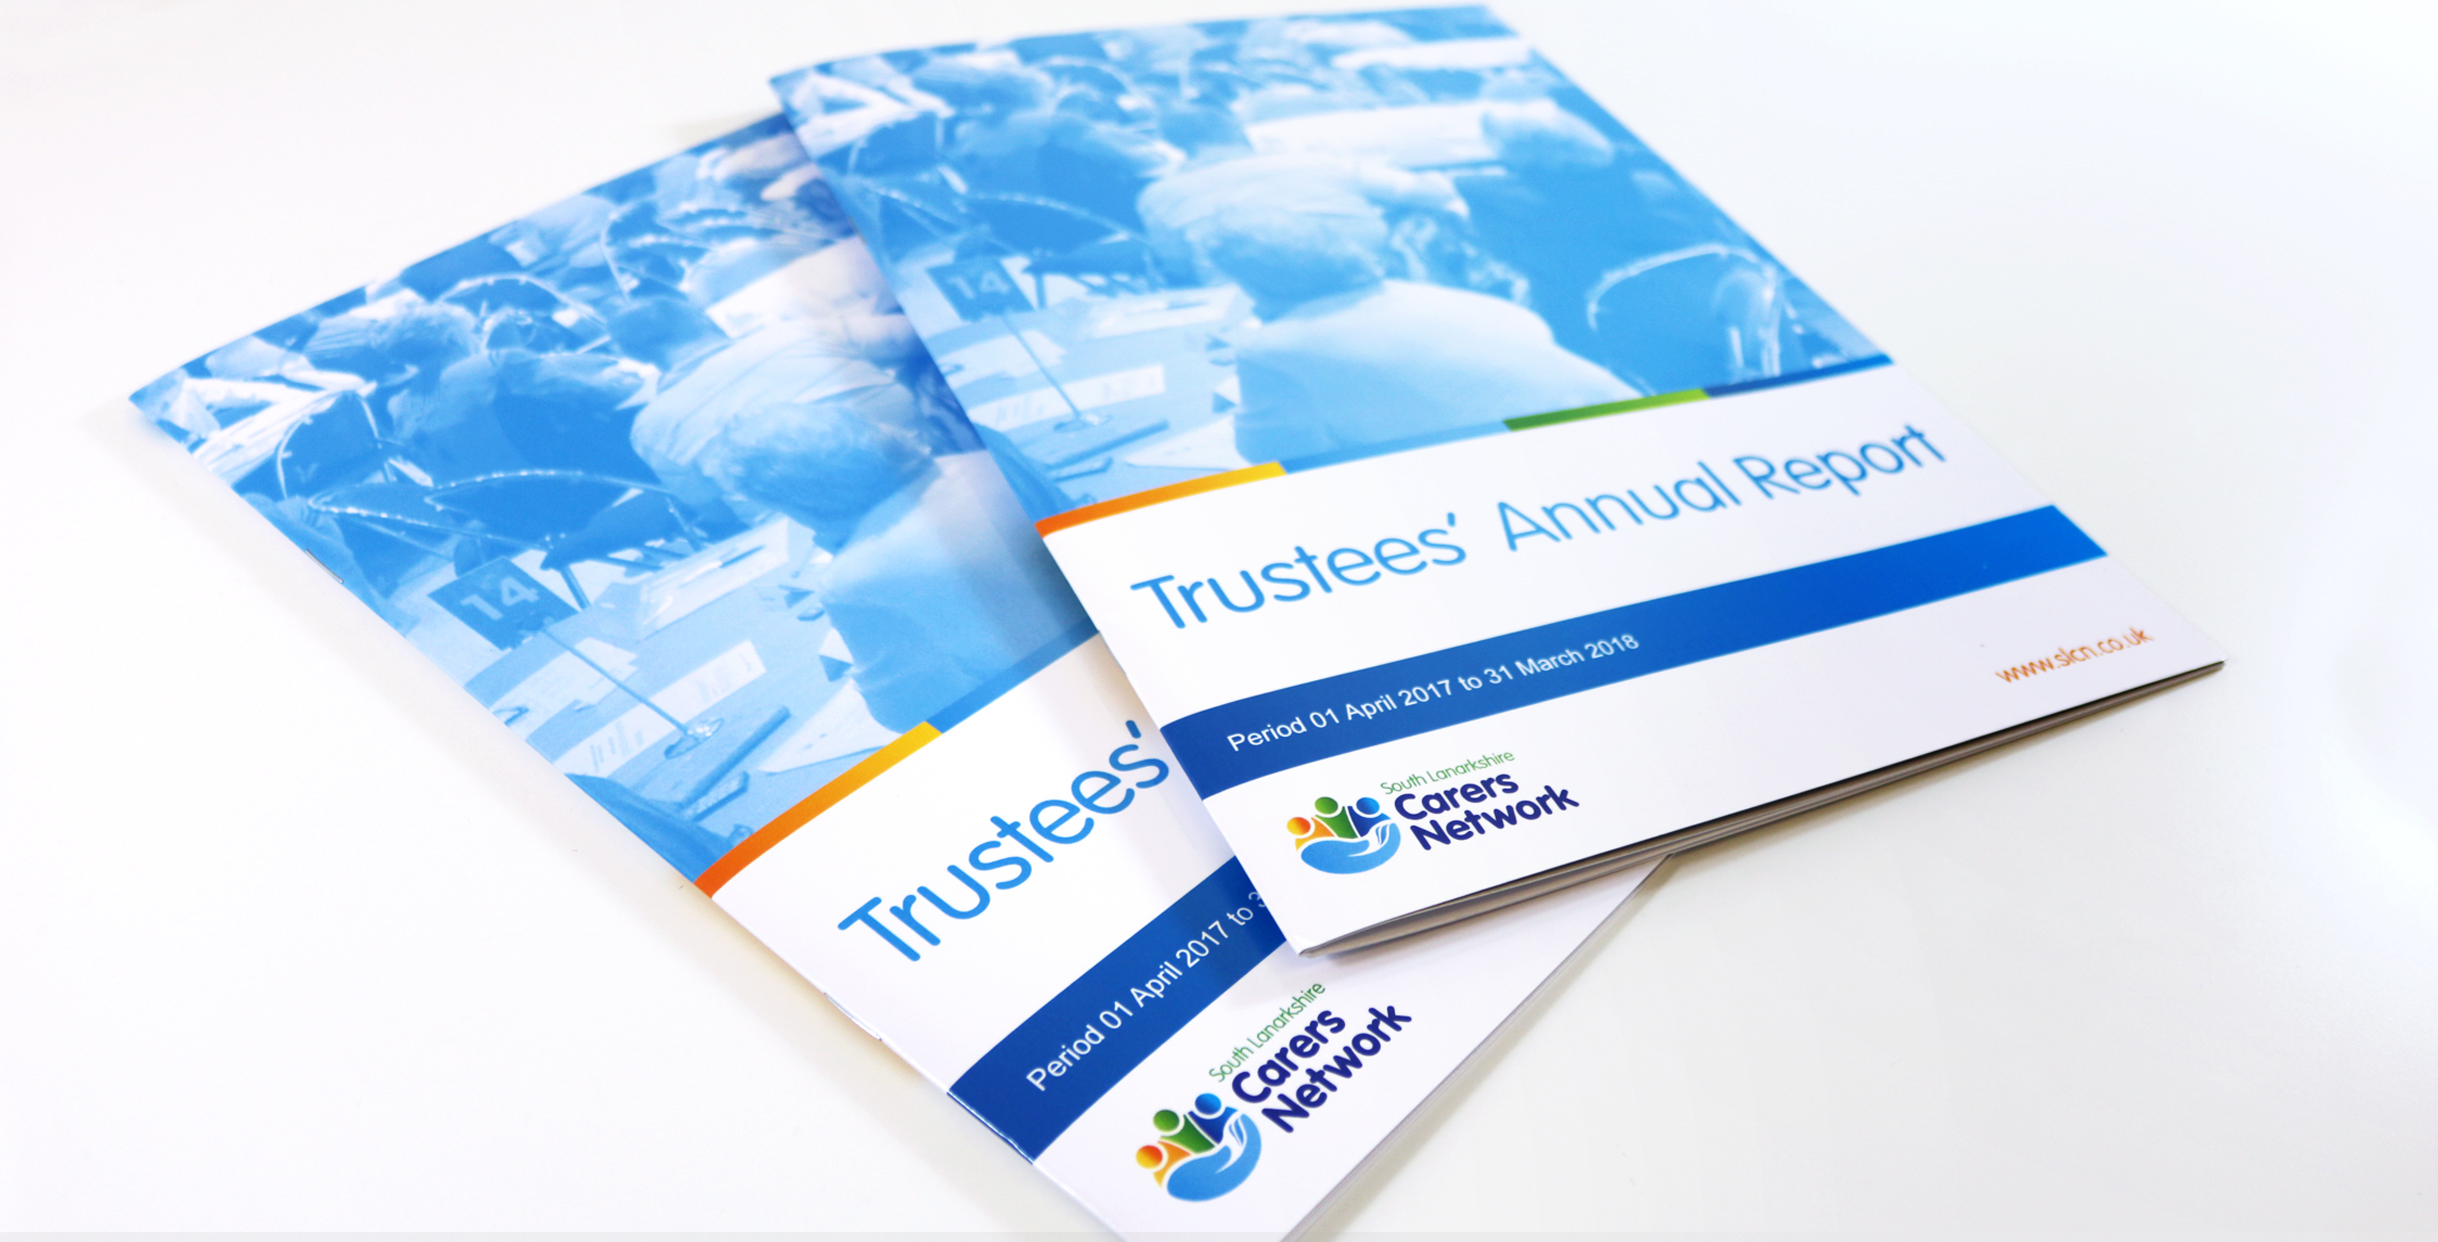 Annual Report for South Lanarkshire Carers Network. Information marketing material